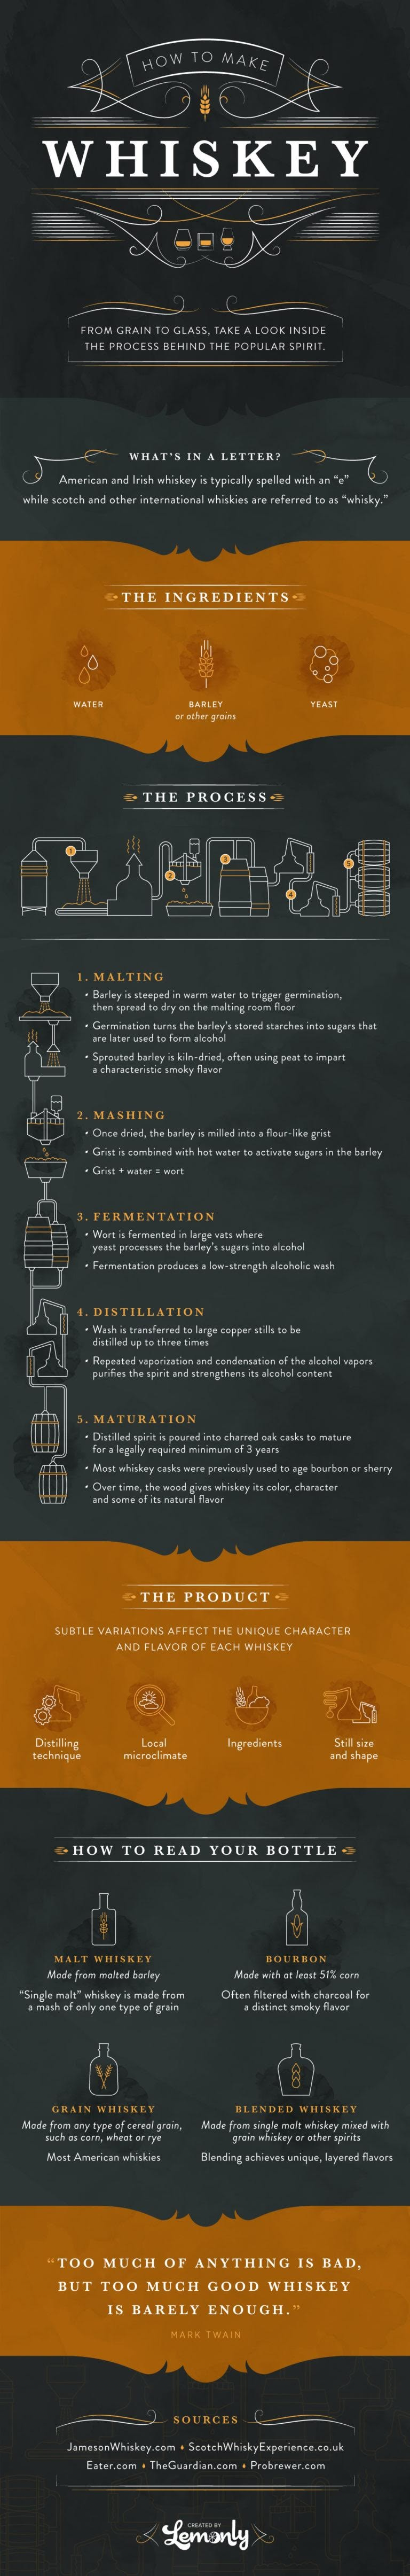 How To Make Whiskey #infographic